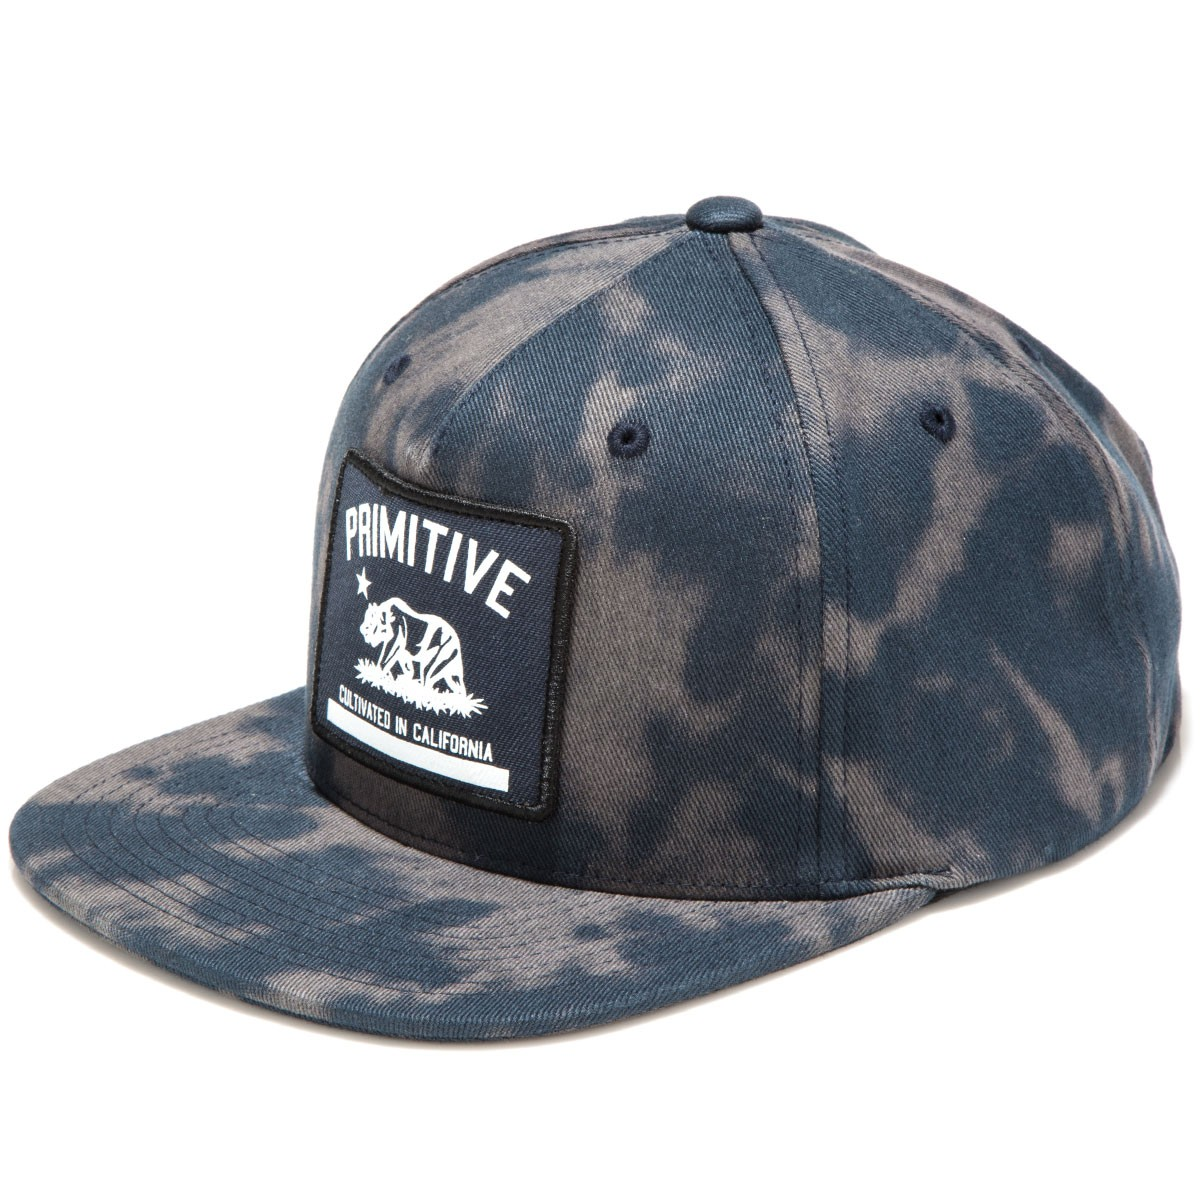 966c8aed1c09f Primitive Cultivated Tie Dye Snapback Hat - Navy